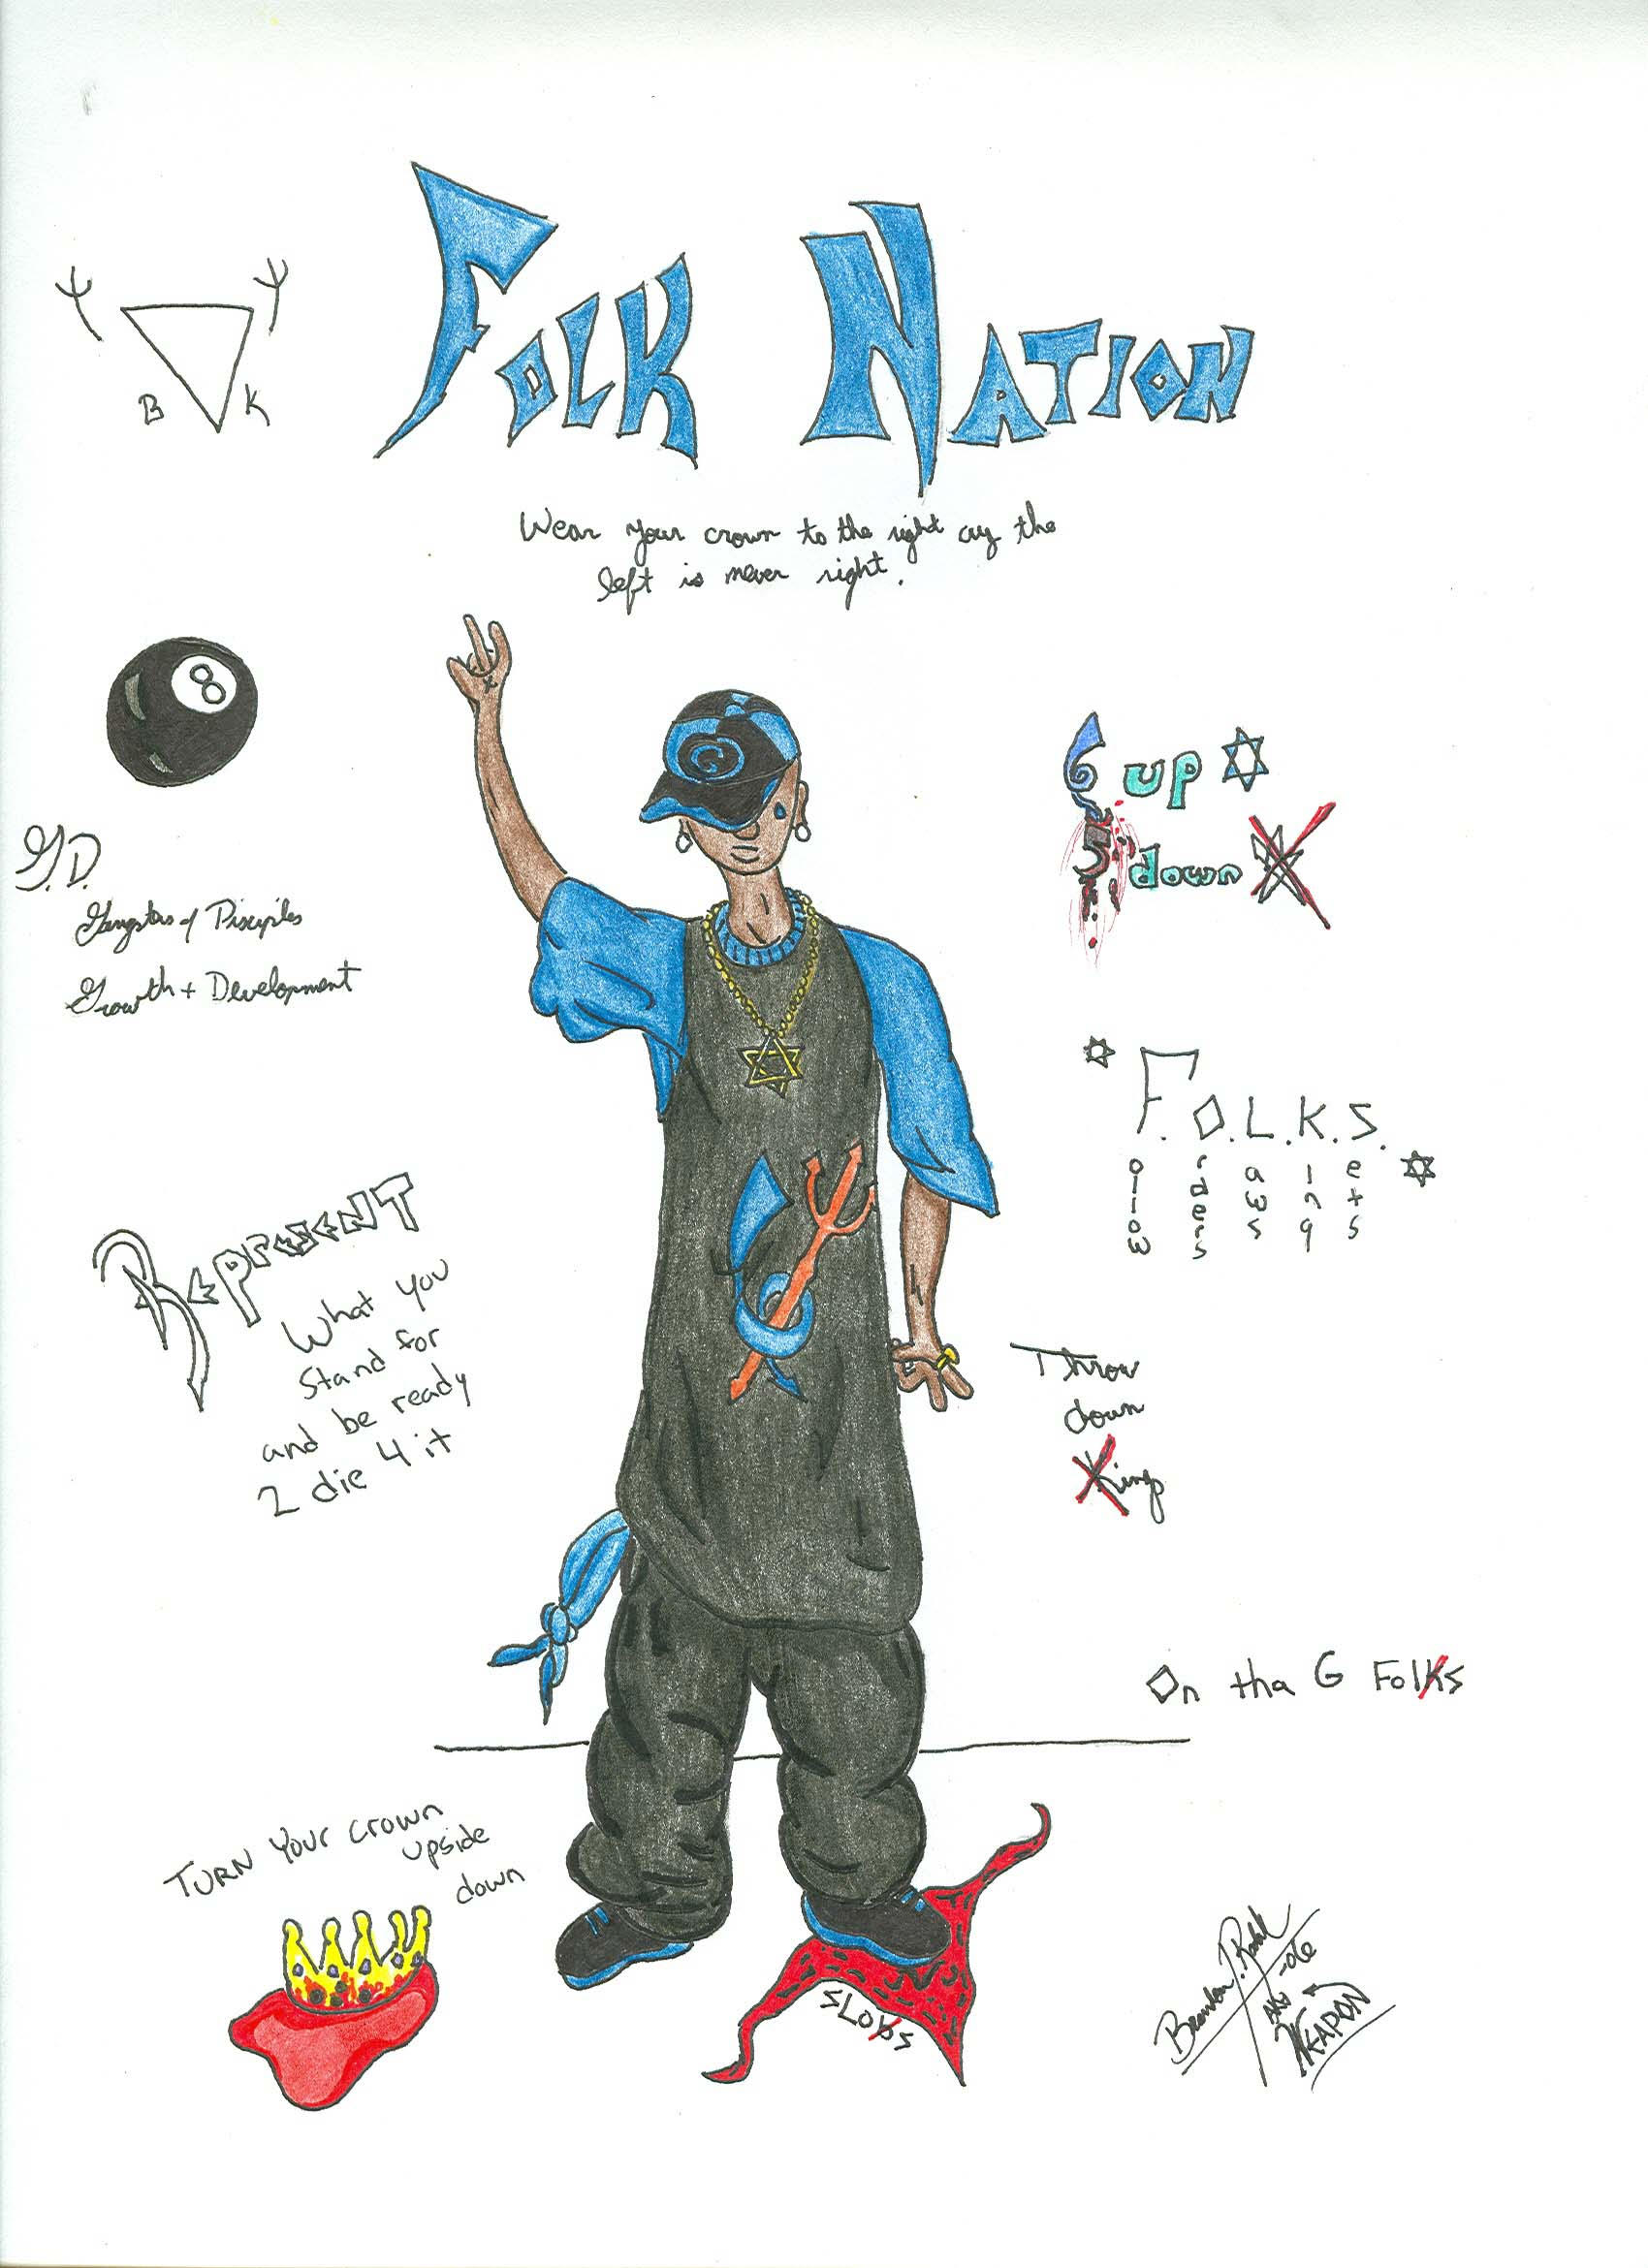 Folk nation by acld on deviantart for Gangster disciple tattoos